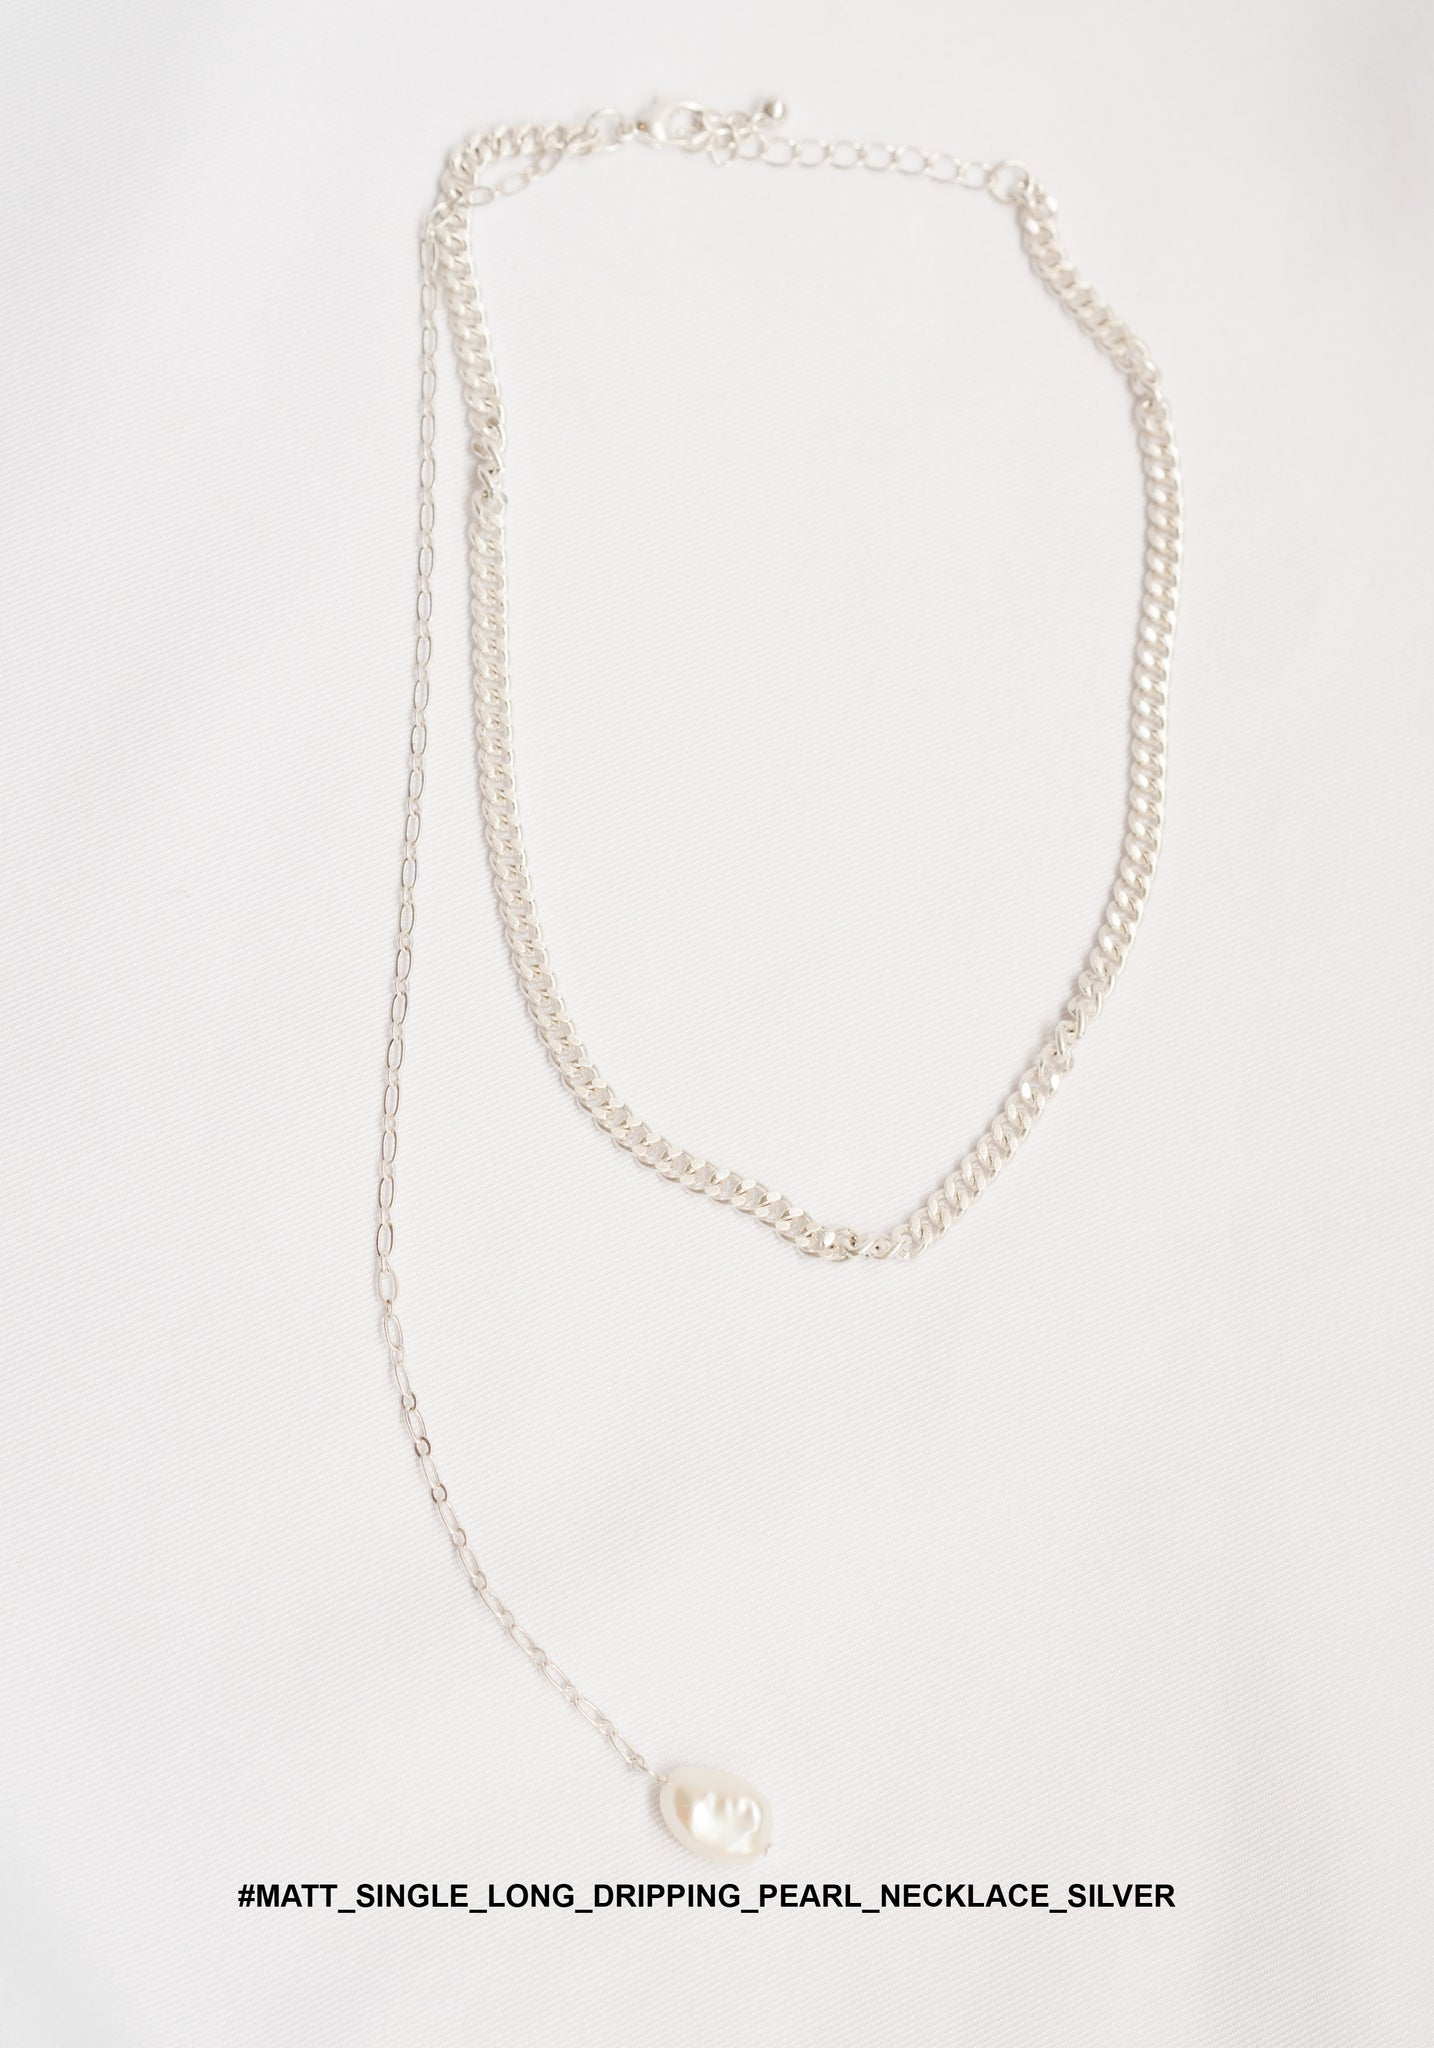 Matt Single Long Dripping Pearl Necklace Silver - whoami